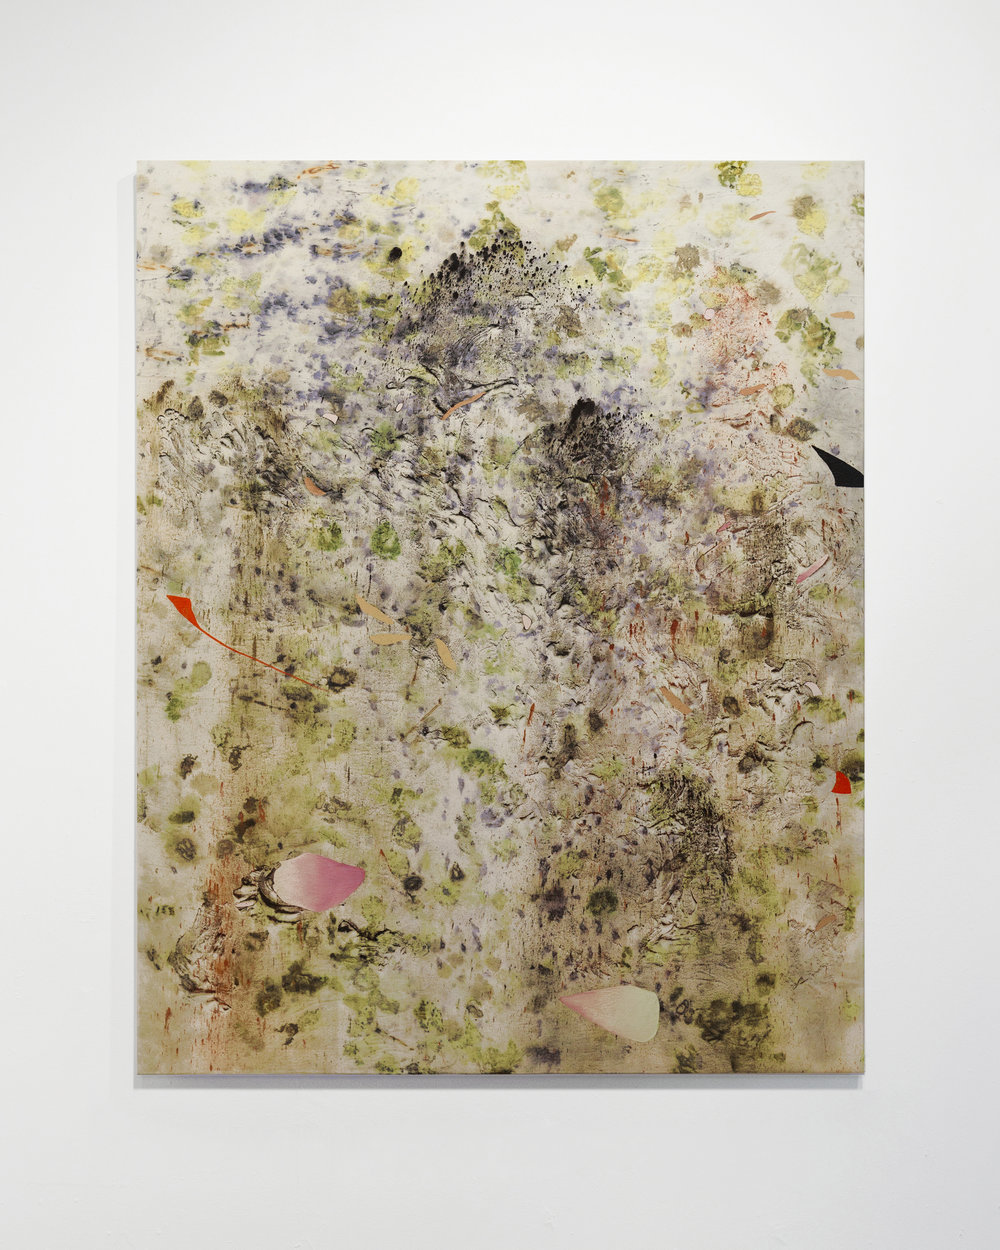 Gillian King_Mourning Humus_6x5ft_2018.jpg